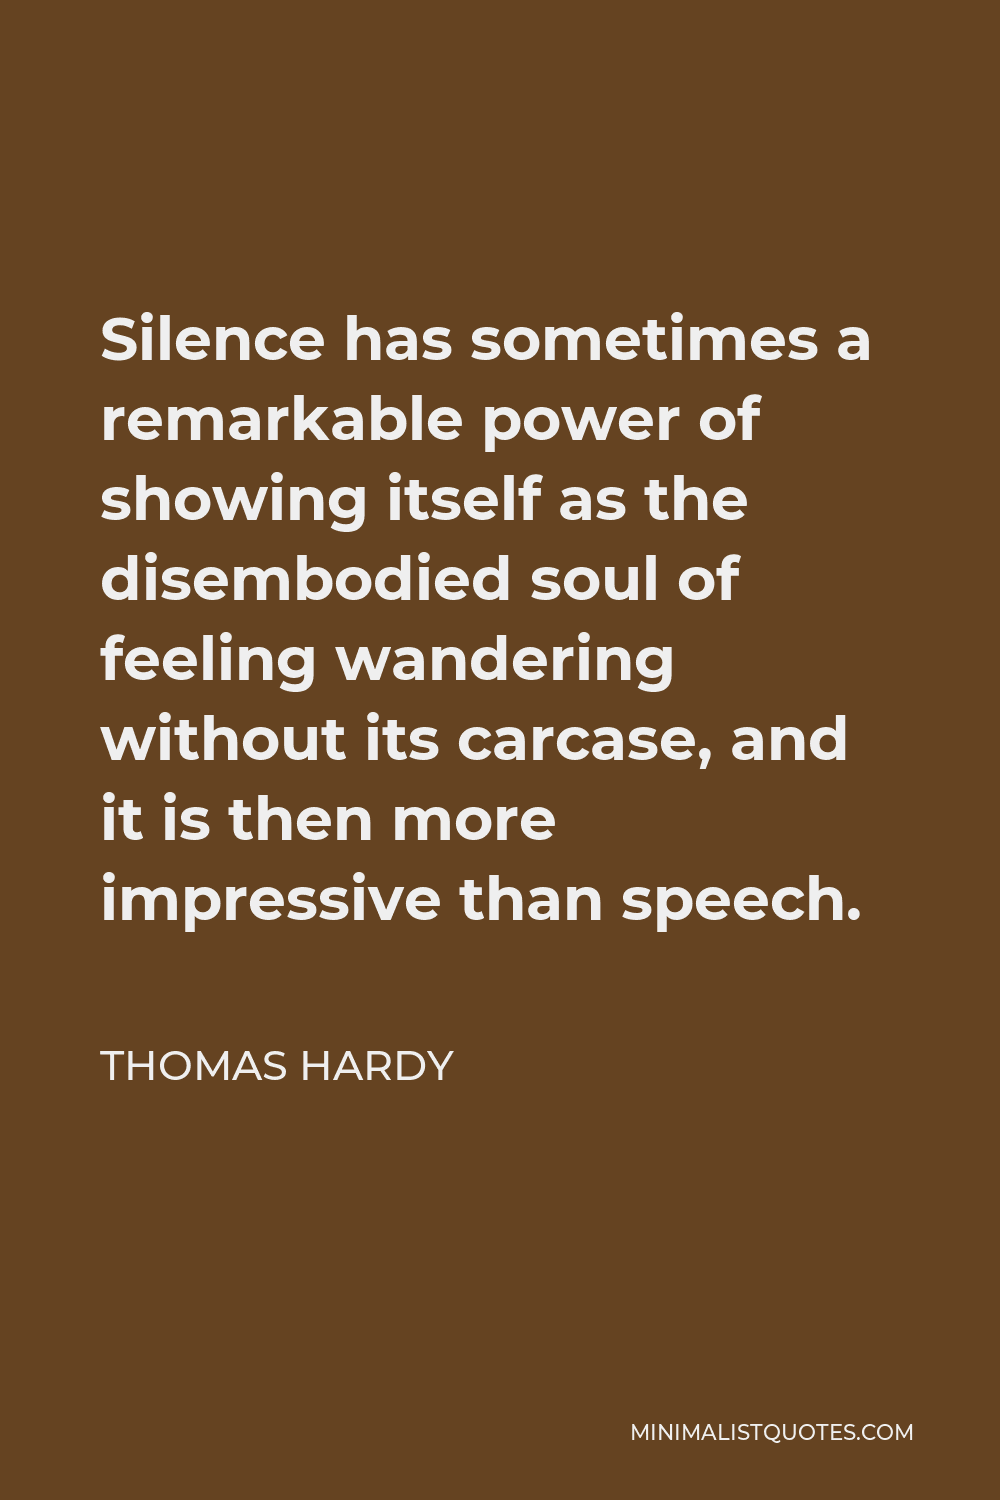 Thomas Hardy Quote - Silence has sometimes a remarkable power of showing itself as the disembodied soul of feeling wandering without its carcase, and it is then more impressive than speech.